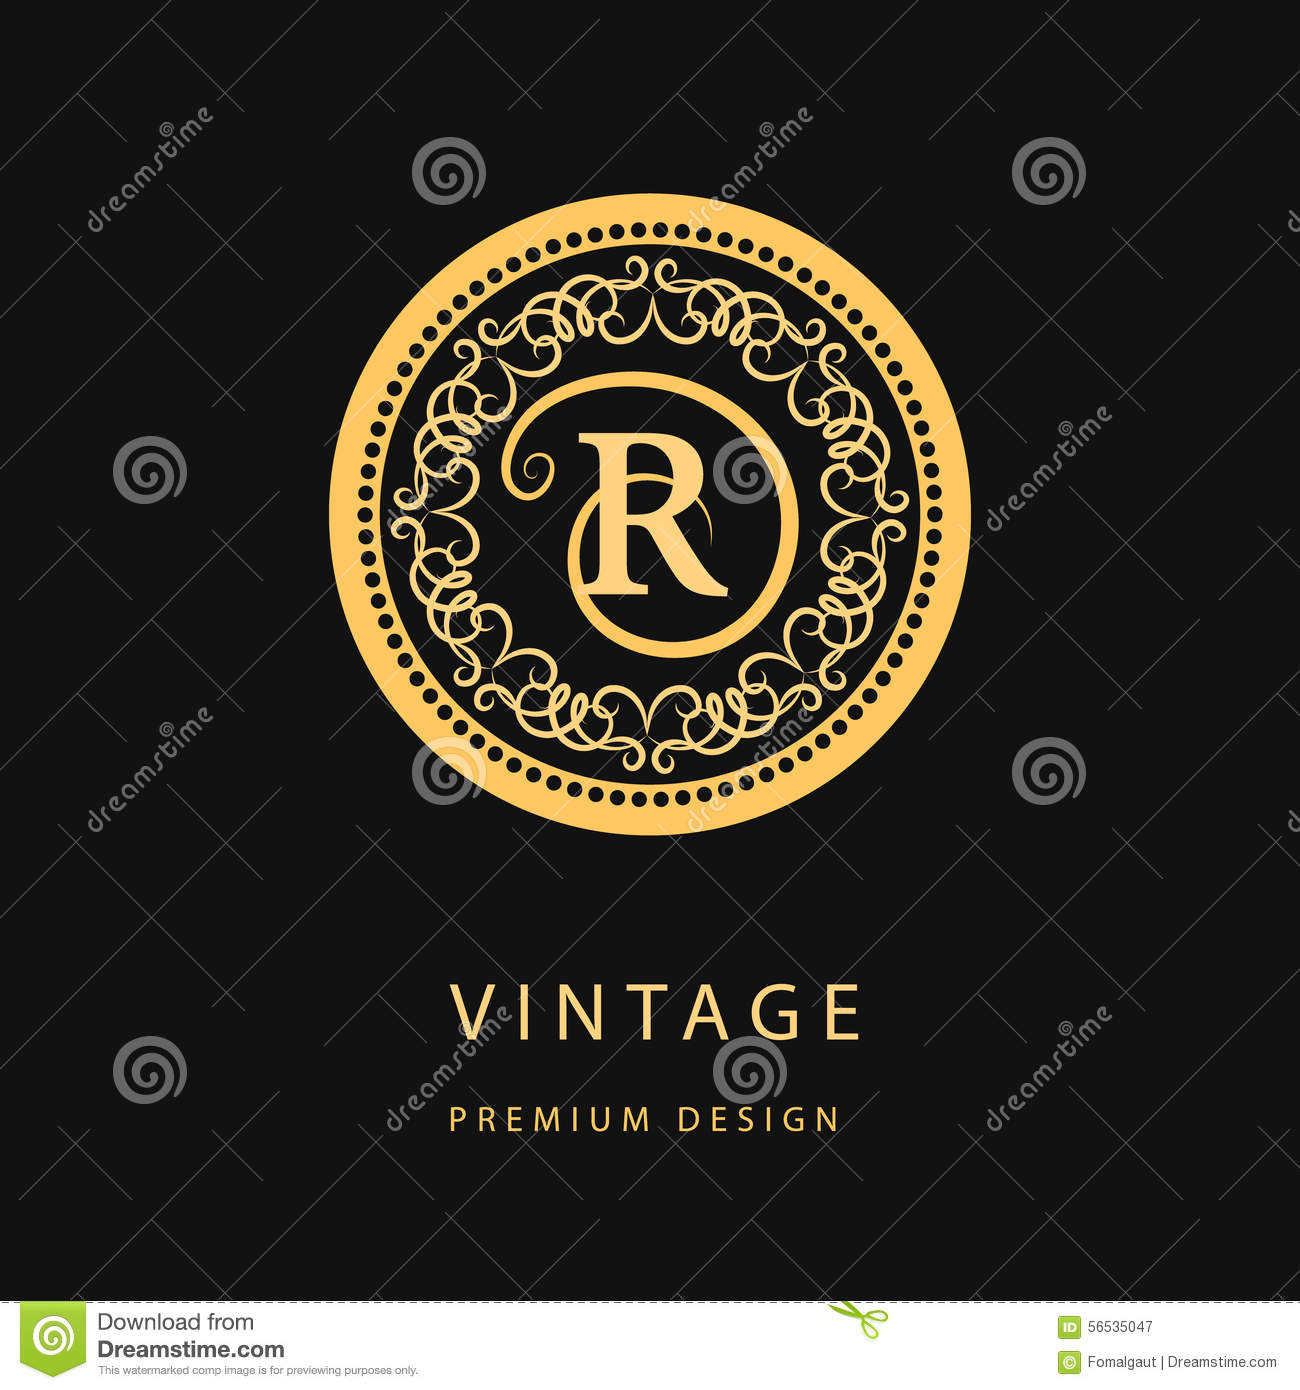 Monogram design elements, graceful template. Calligraphic elegant line art logo design. Letter emblem R for Royalty, business card